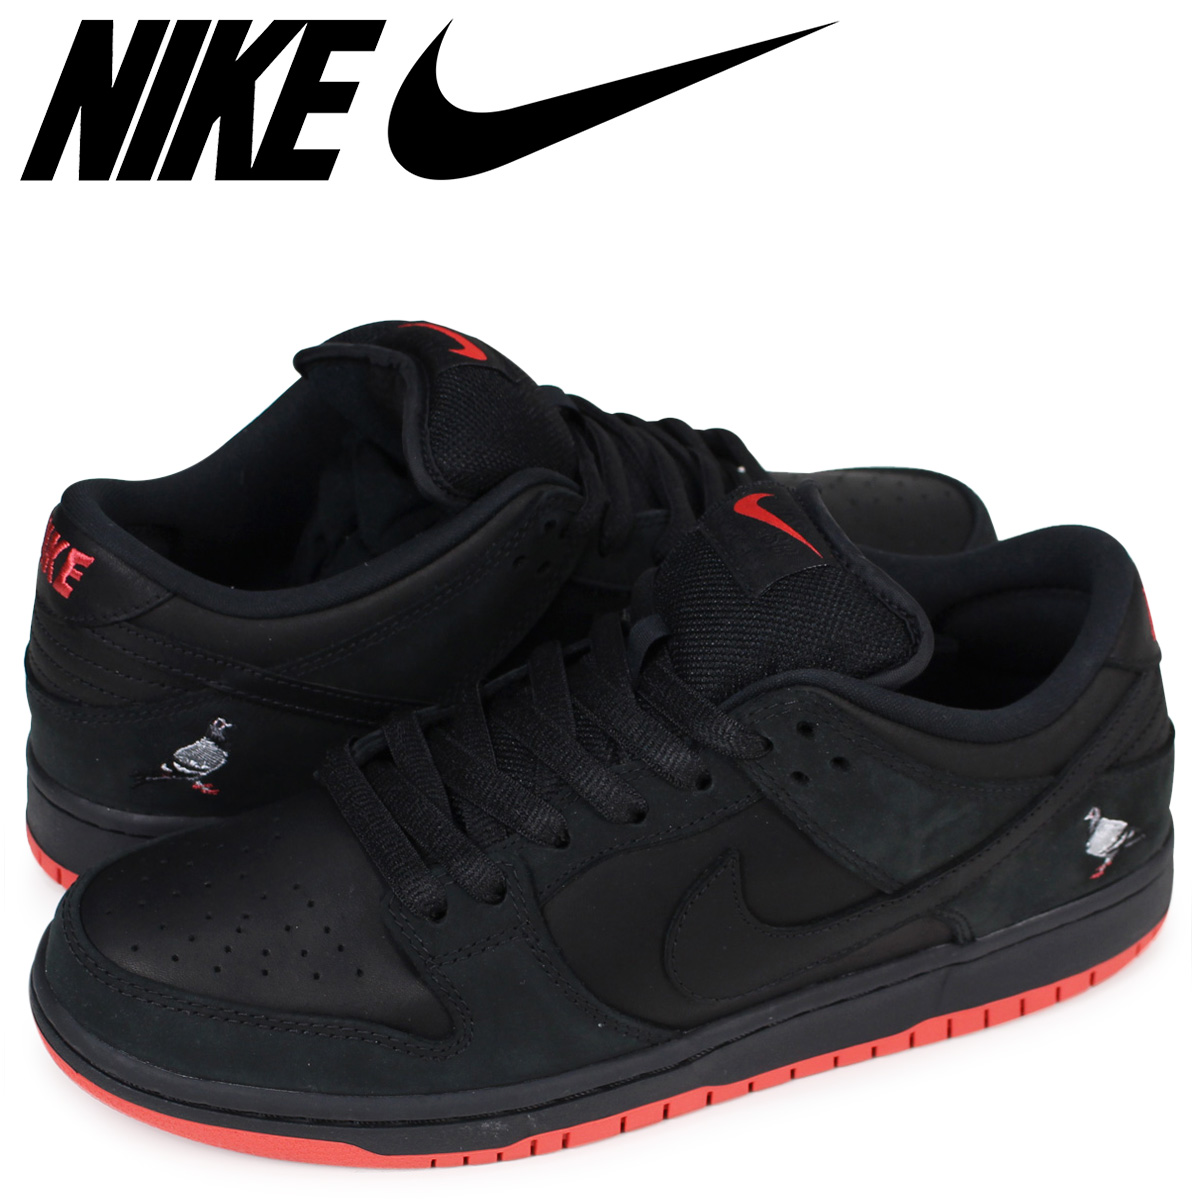 on sale 7d0c9 f723a NIKE SB ZOOM DUNK LOW TRD QS PIGEON Nike dunk low sneakers 883,232-008  men s ...